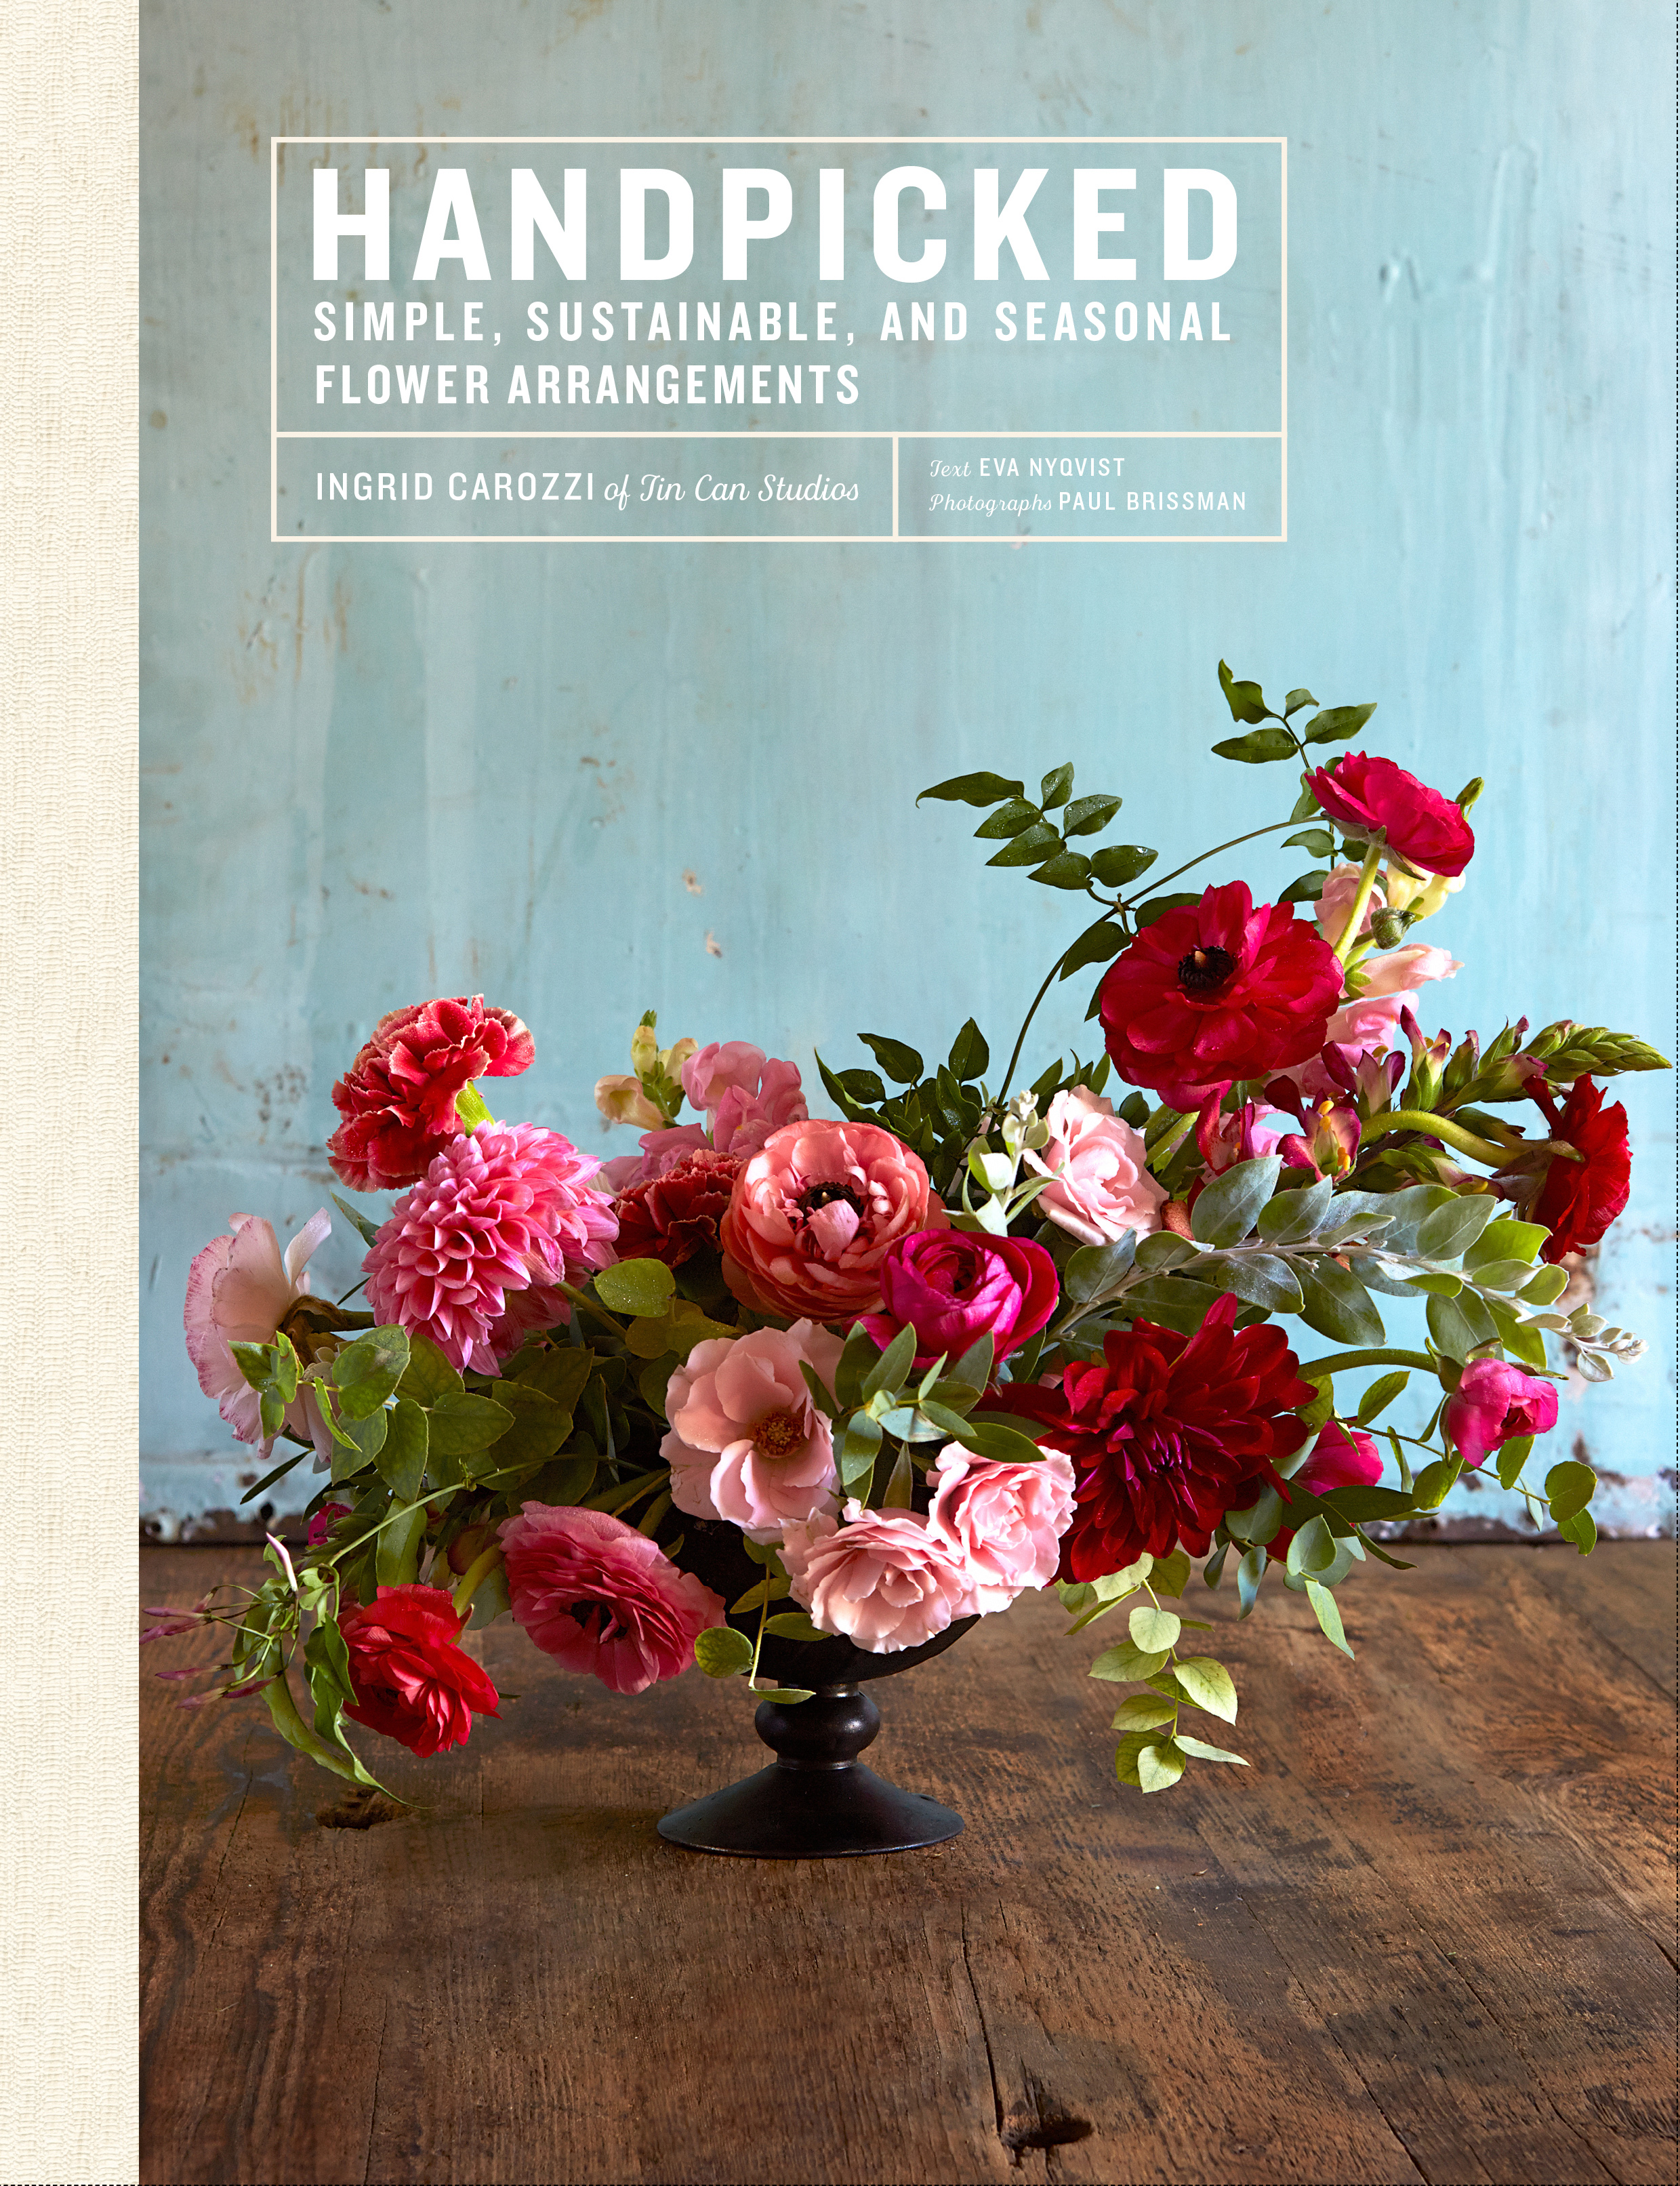 Book Launch: Handpicked: Simple, Sustainable, and Seasonal Flower Arrangements by Ingrid Carozzi